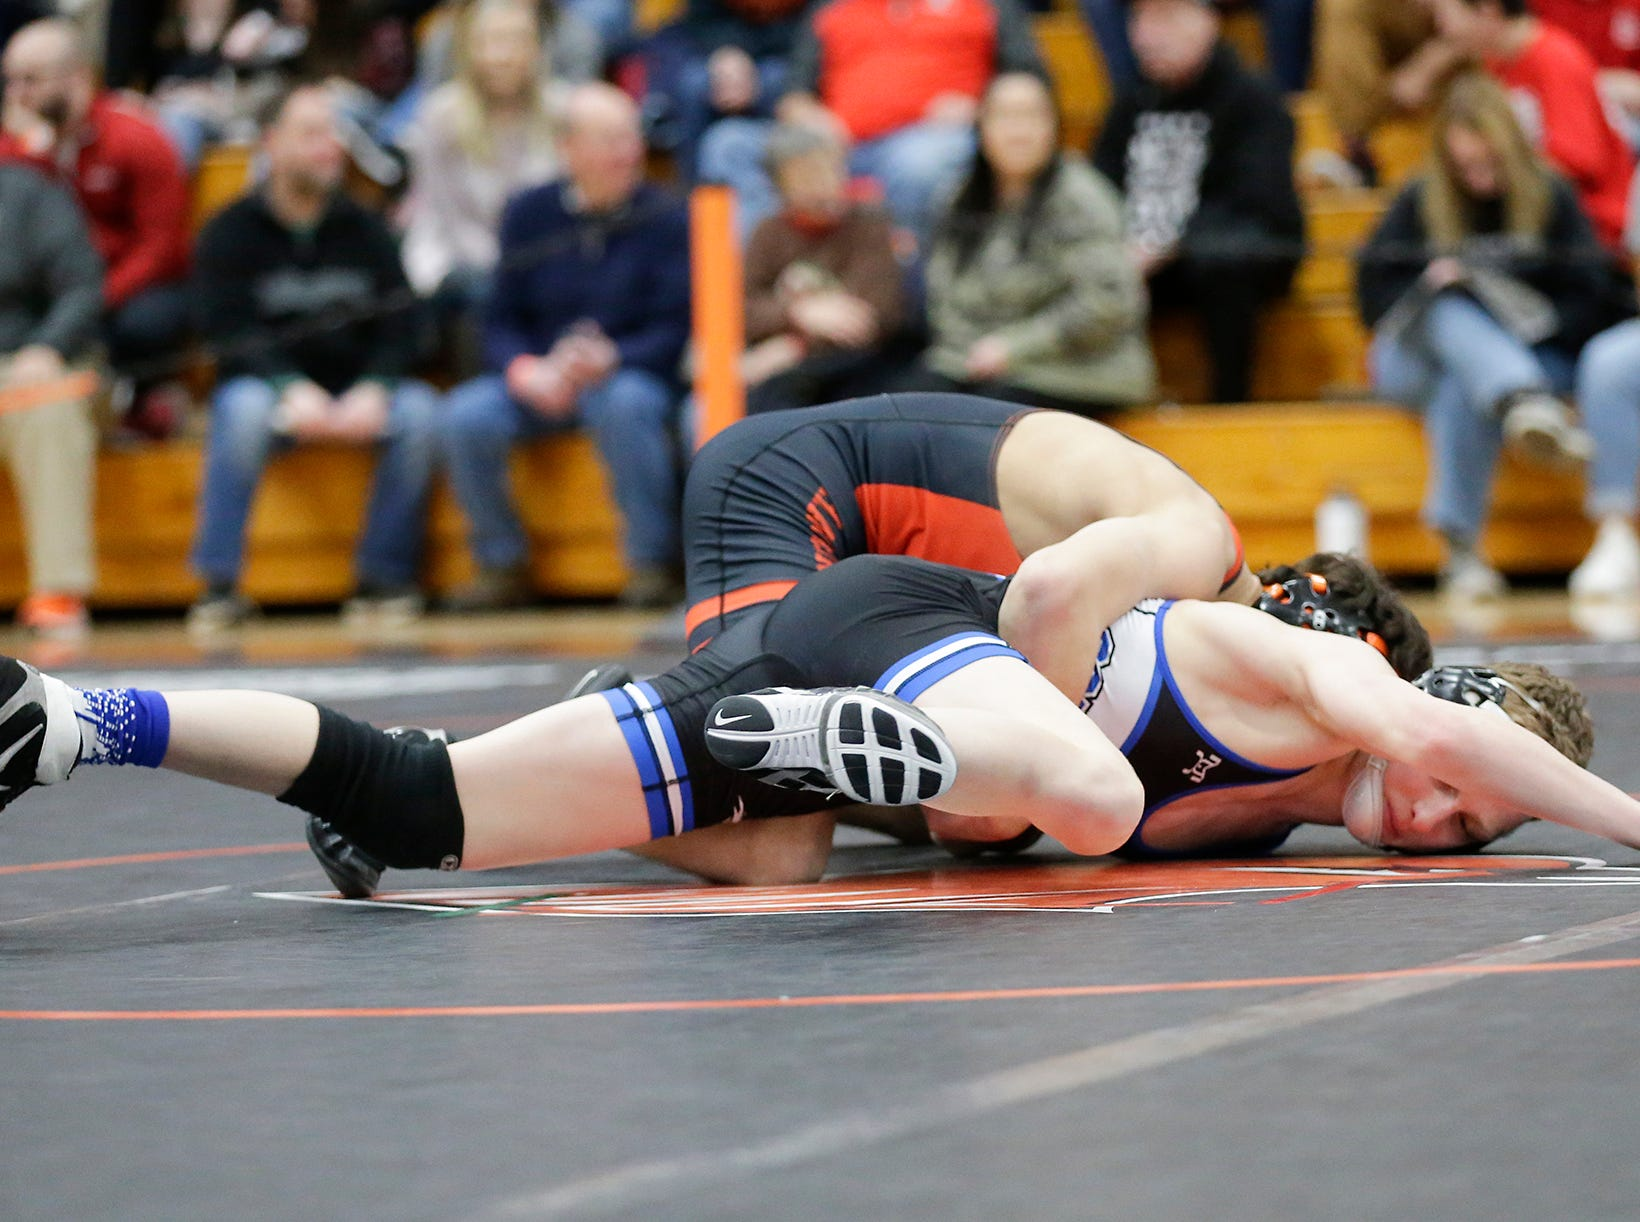 Jalen Spuhler of Hartford Union High School wrestles Logan Grota of Oshkosh West High School in the 132 pound weight class during the WIAA sectionals Saturday, February 16, 2019 in Hartford, Wis. Spuhler won with a pin. Doug Raflik/USA TODAY NETWORK-Wisconsin